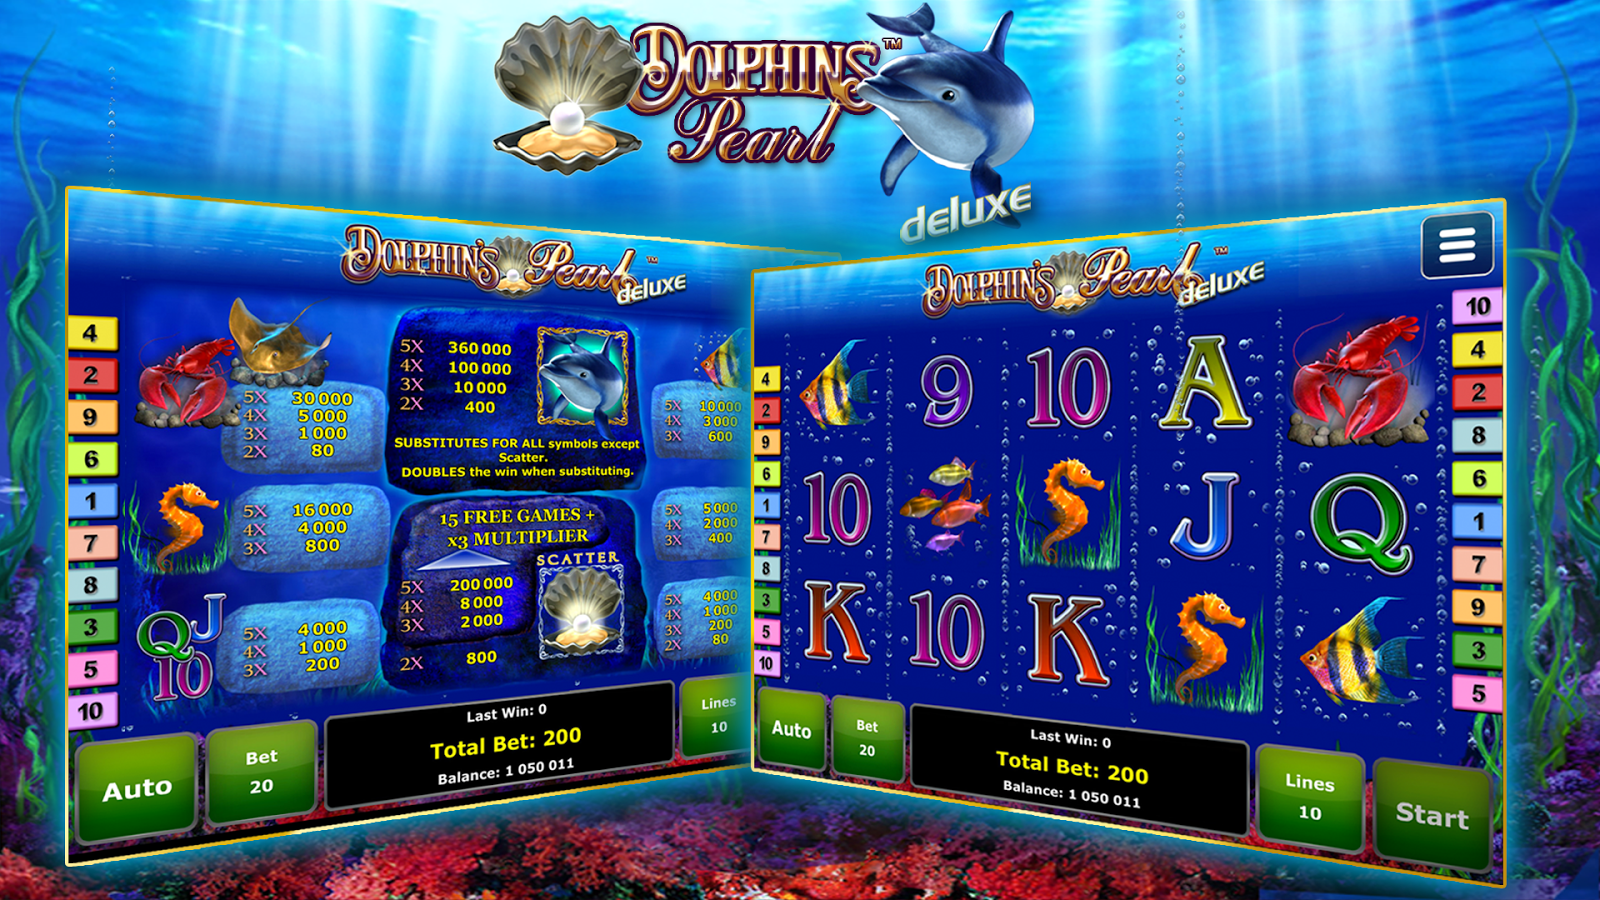 gametwist casino online ra game